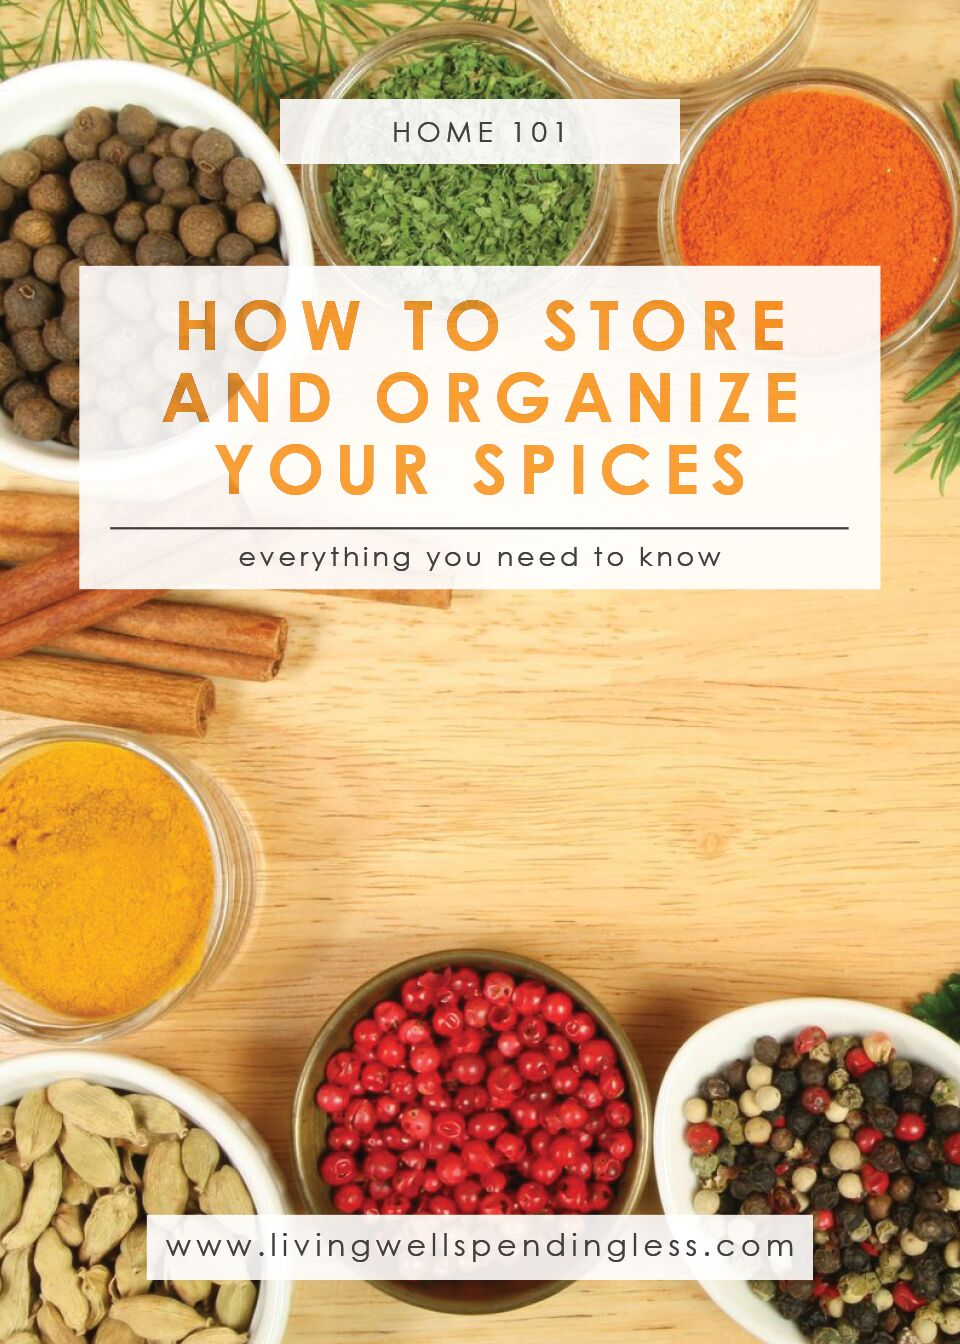 How to Store & Organize Your Spices: Everything You Need to Know